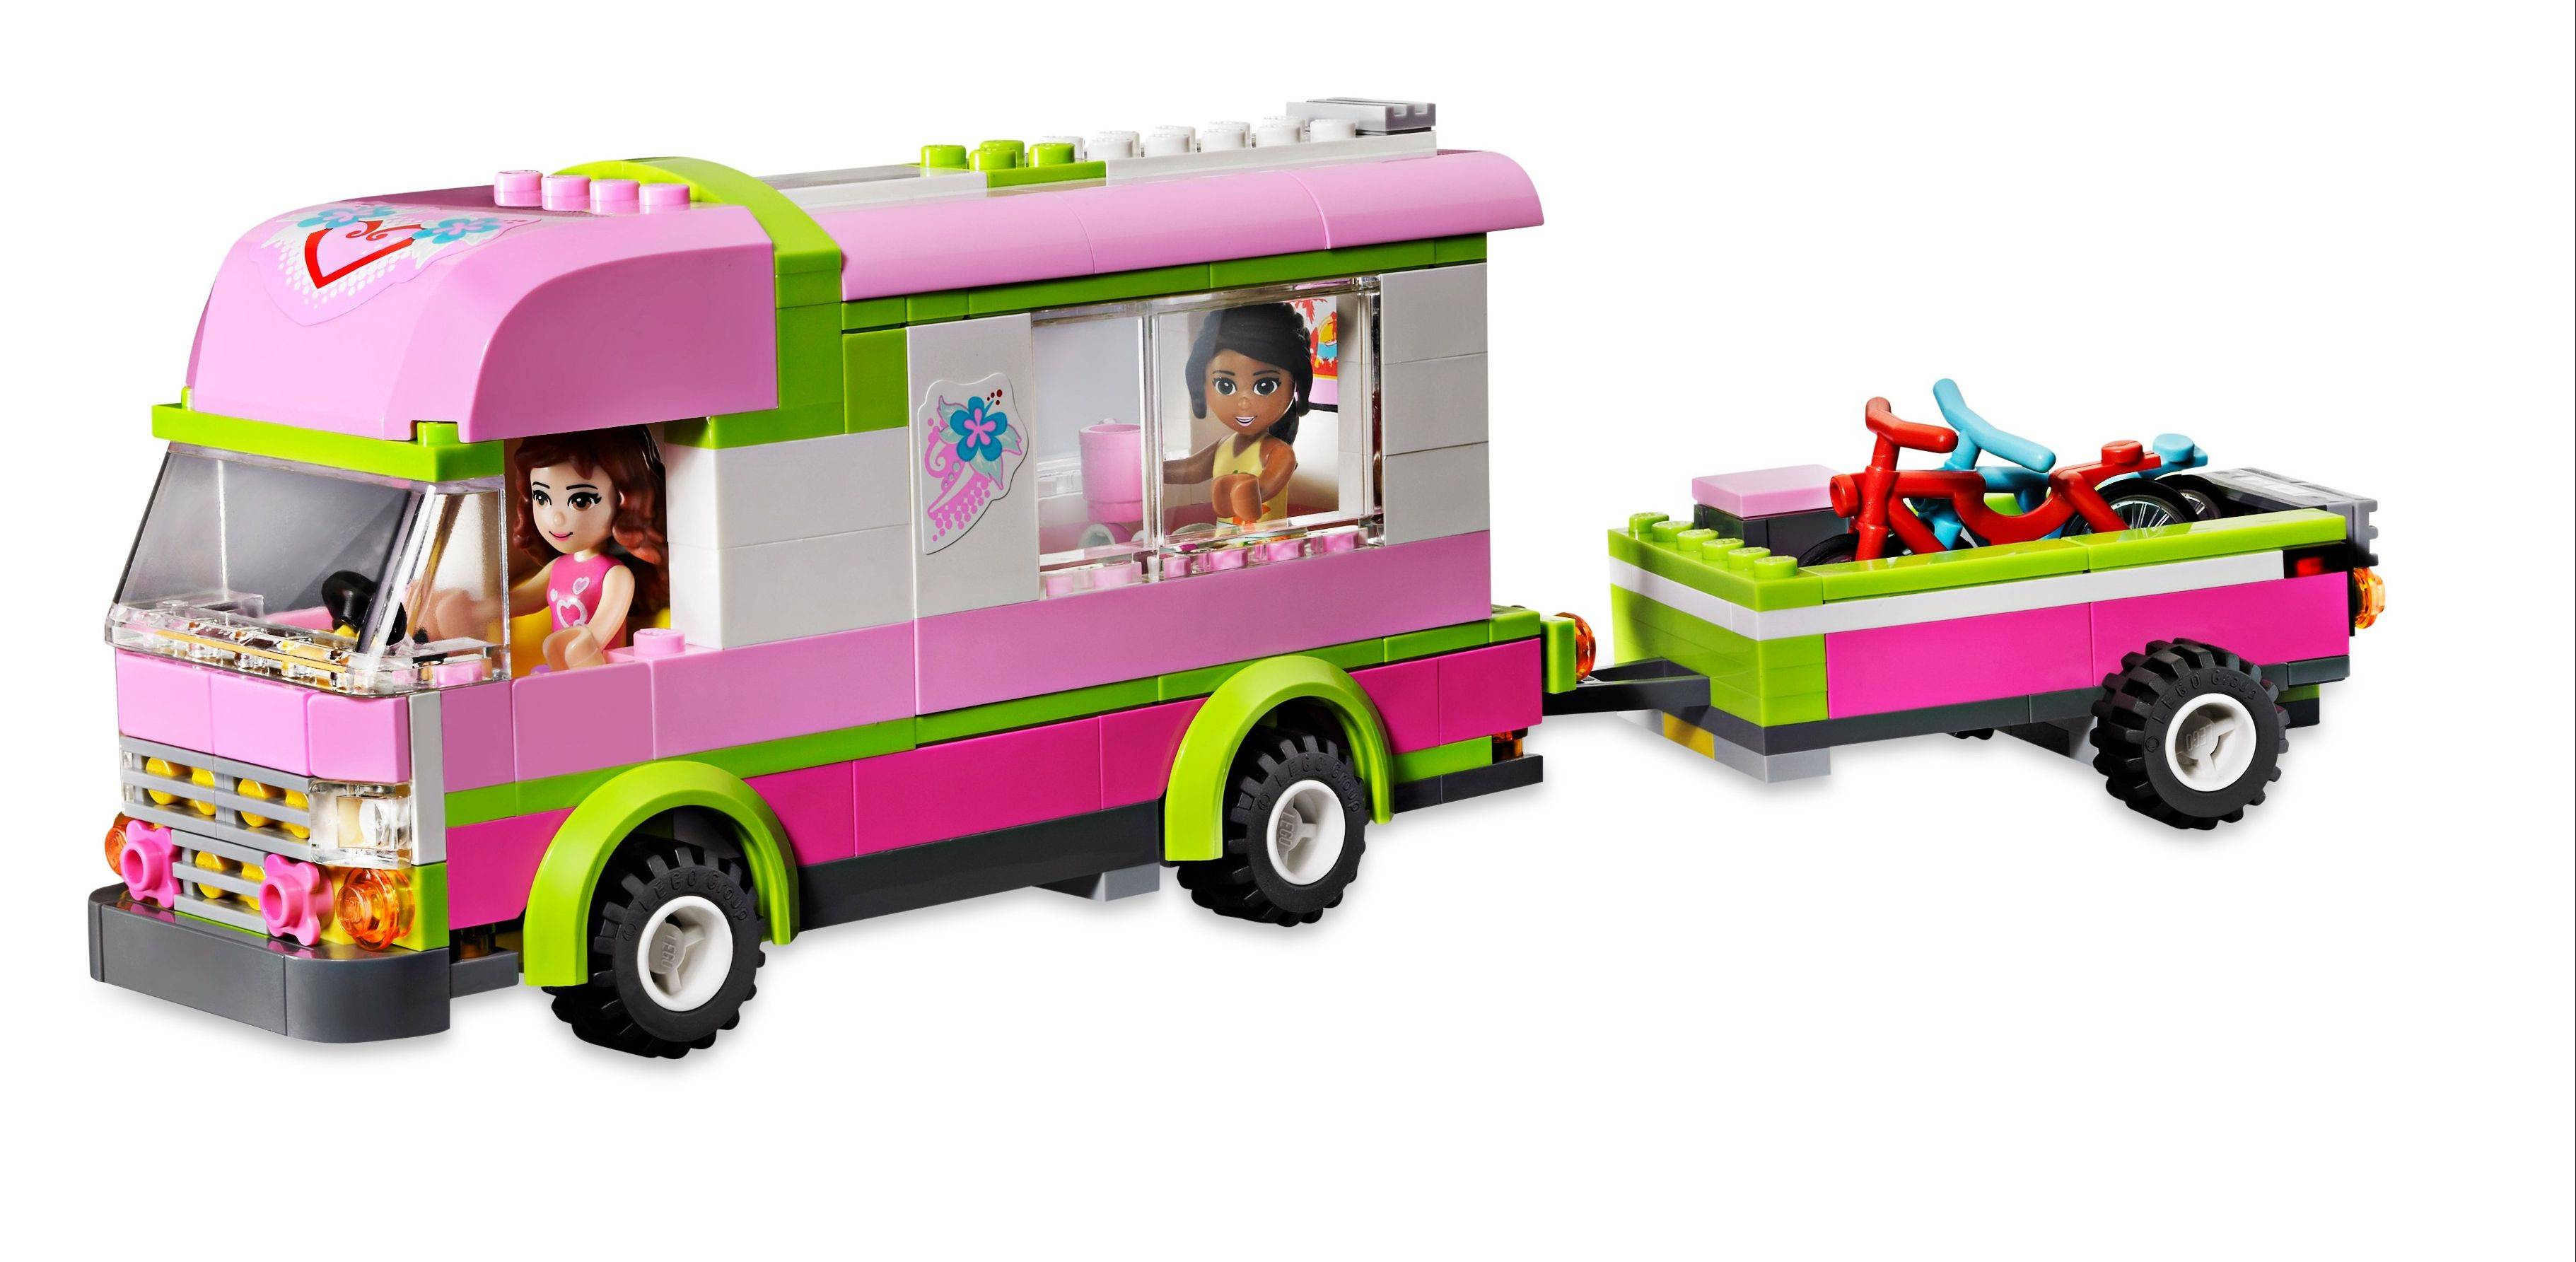 Lego Friends Adventure Camper.